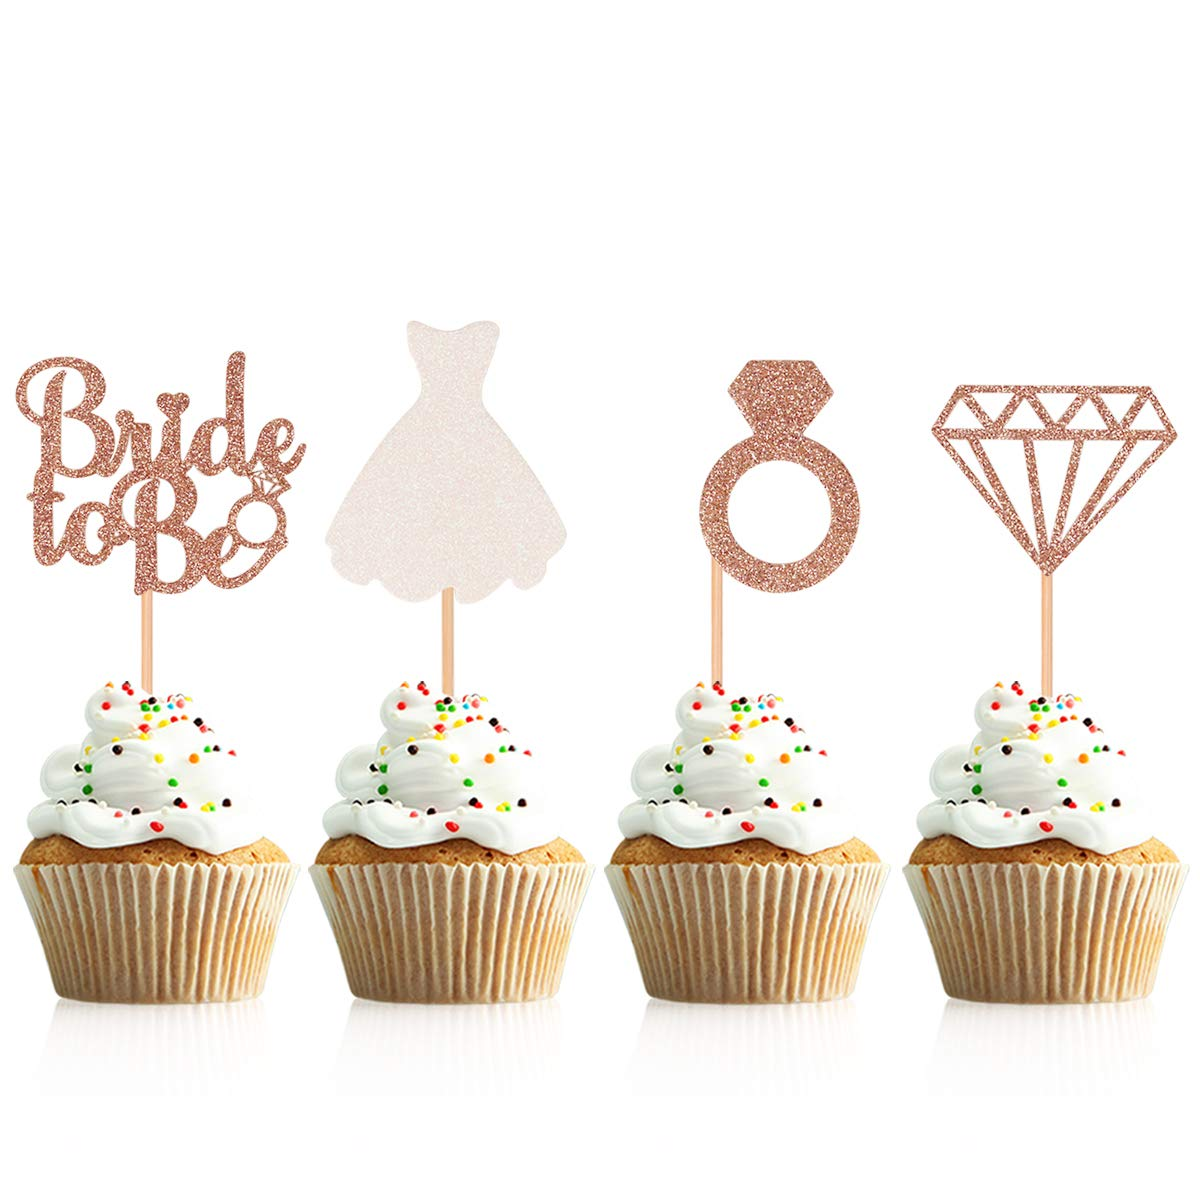 Donoter 48 Pcs Glitter Bride to be Cupcake Toppers Diamond Ring Wedding Dress Cupcake Picks for Wedding Engagement Bridal Shower Party Decorations